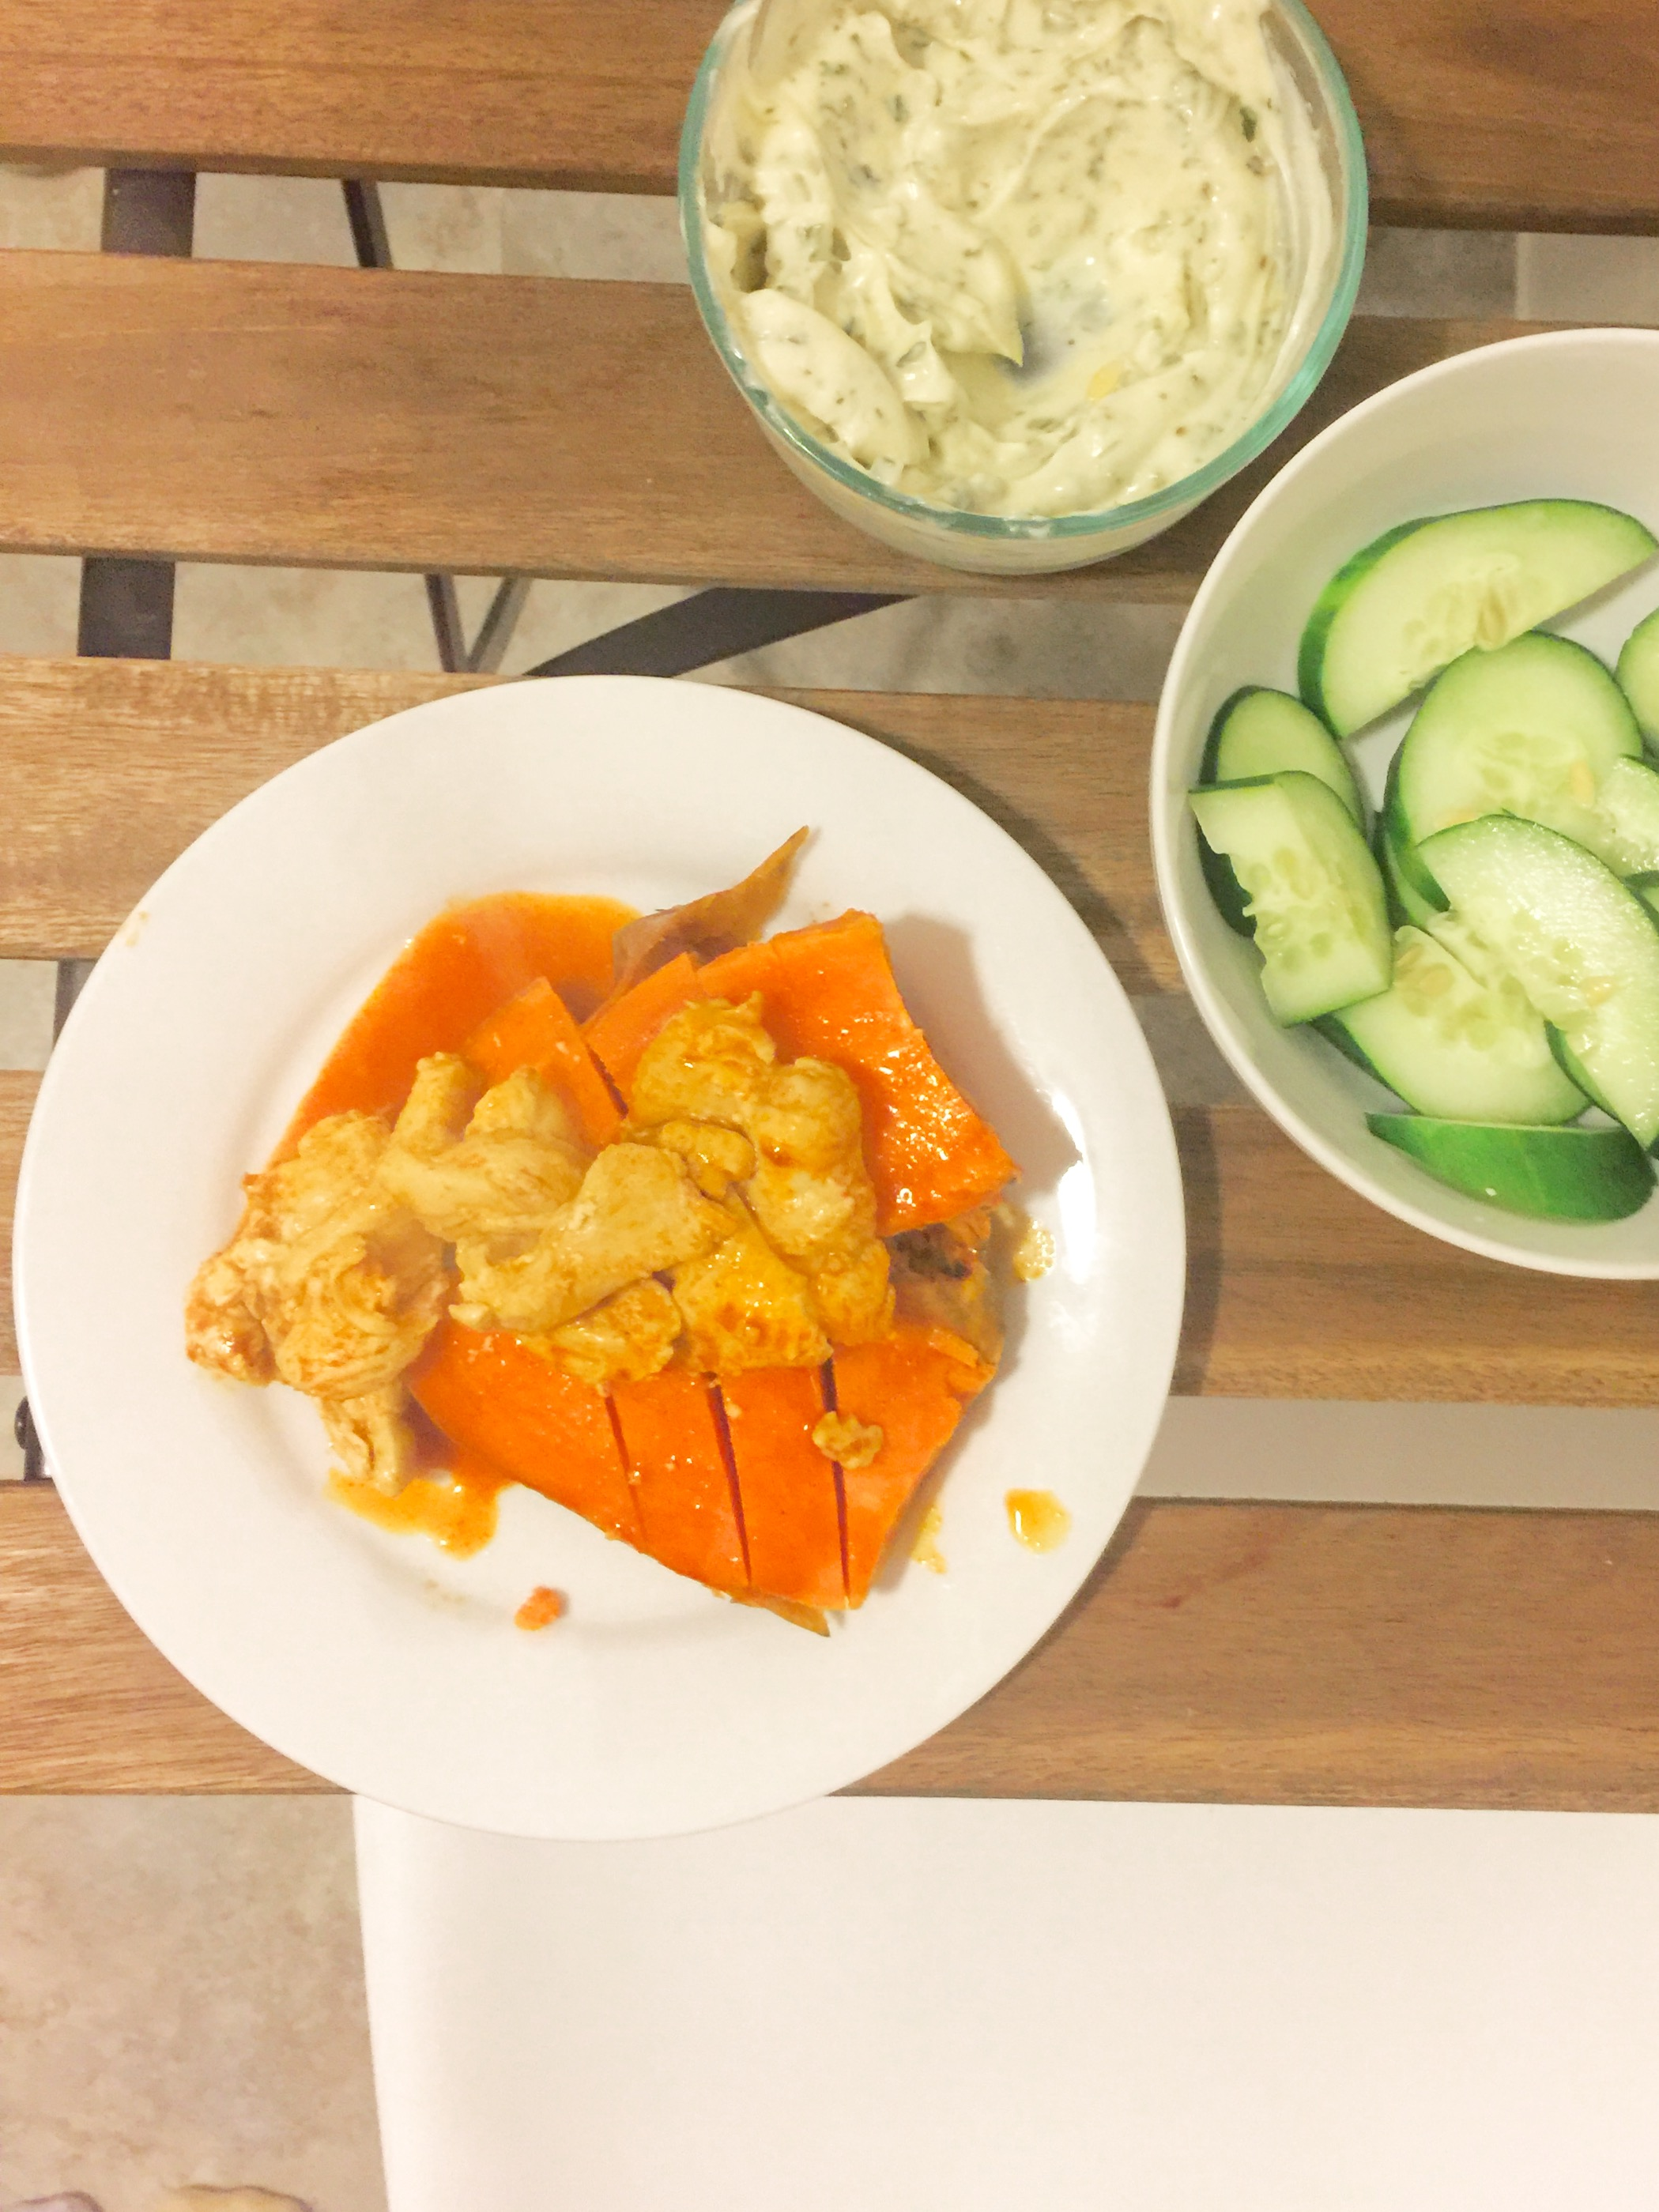 Buffalo chicken on a sweet potato with cucumbers and ranch